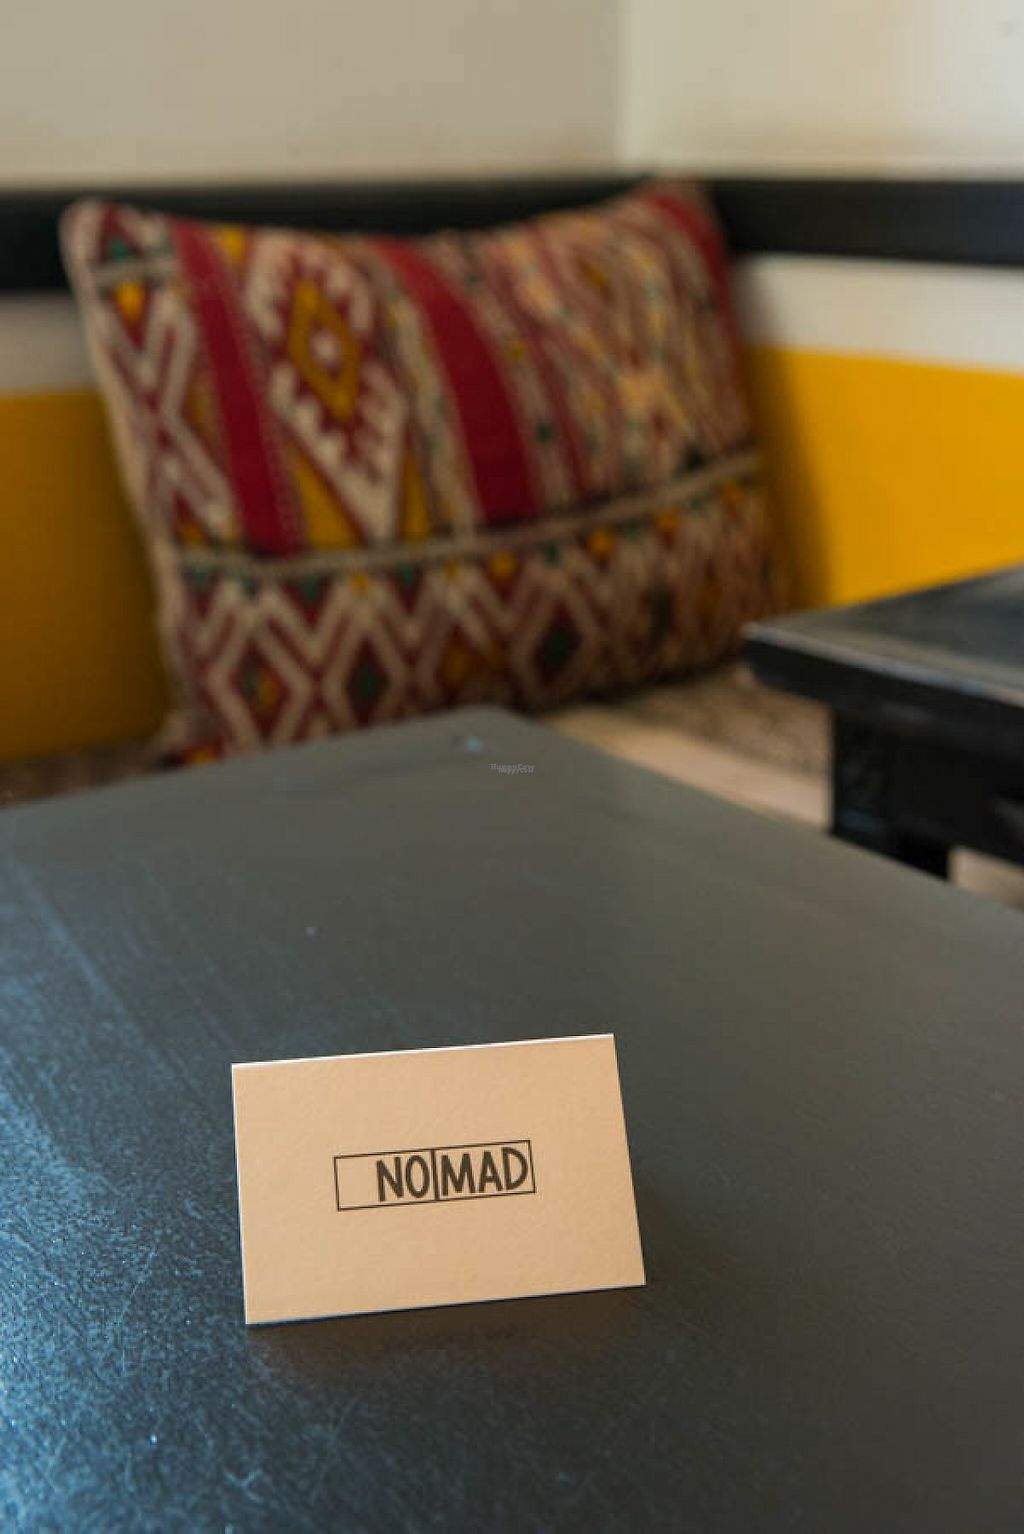 """Photo of NOMAD  by <a href=""""/members/profile/EmmaPamley-Liddell"""">EmmaPamley-Liddell</a> <br/>Nomad downstairs <br/> March 8, 2017  - <a href='/contact/abuse/image/83652/234321'>Report</a>"""